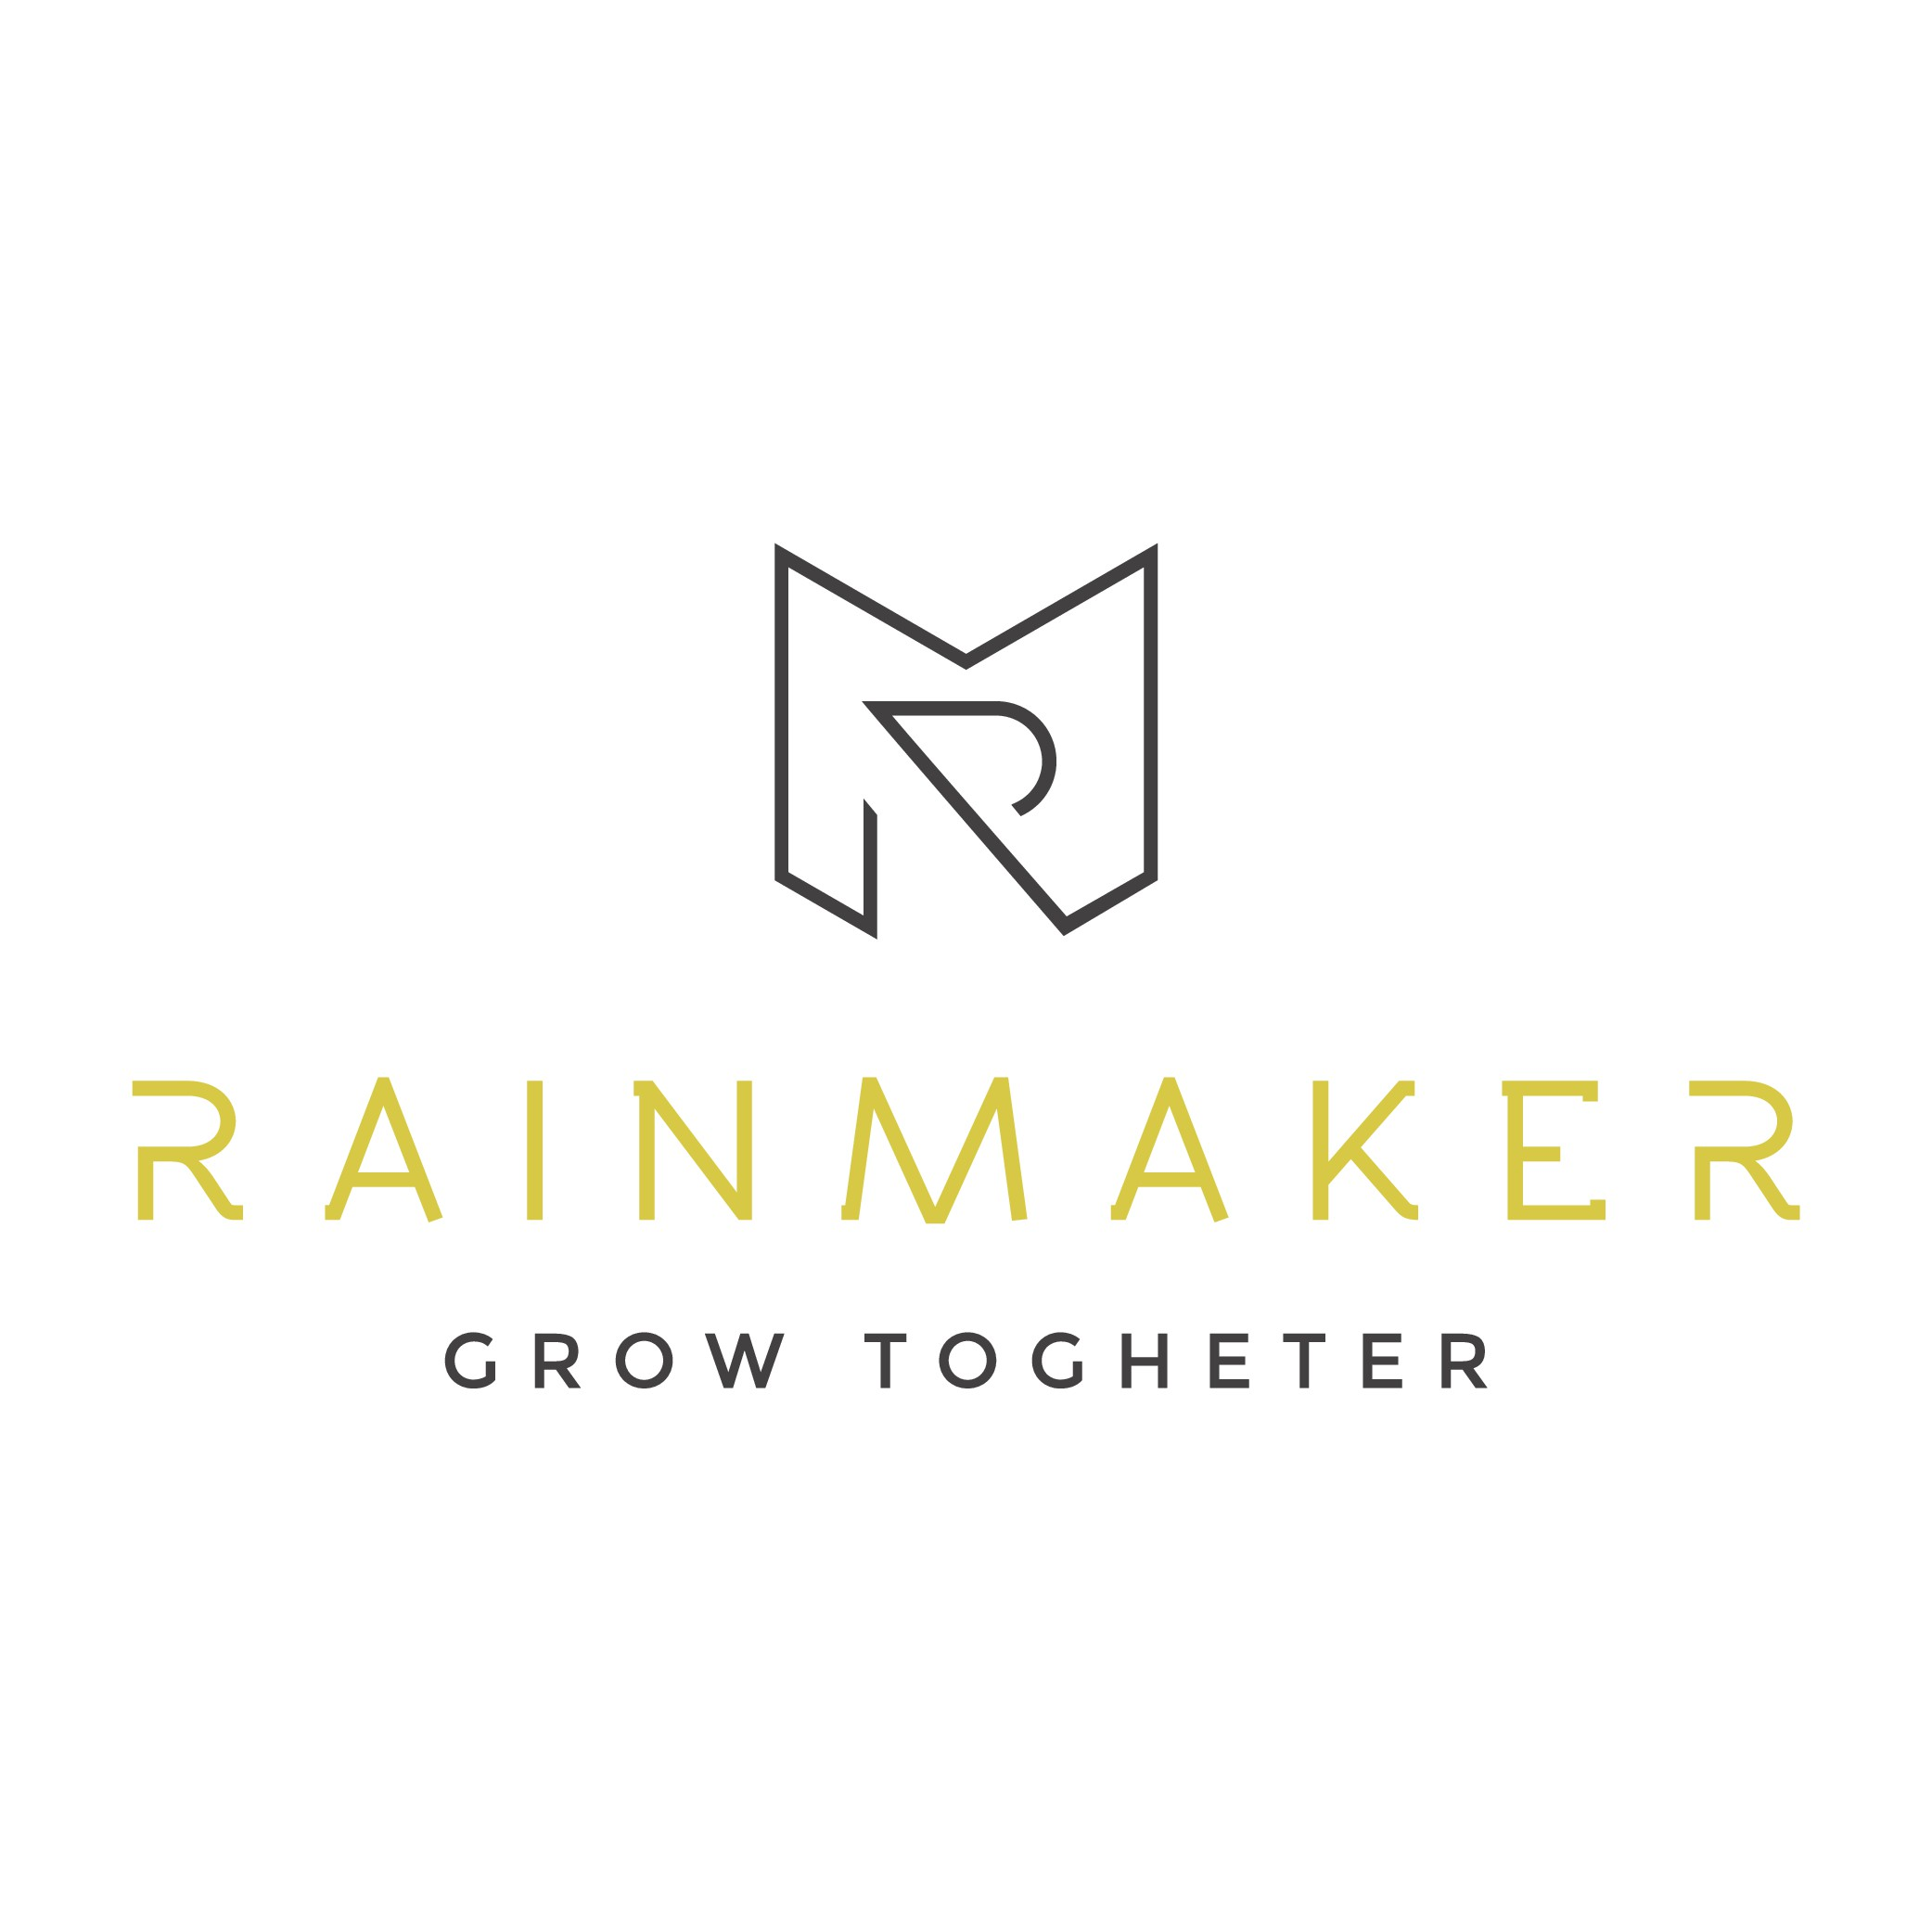 Let's magnify your business! Rainmaker helps companies (B2B) win new customer